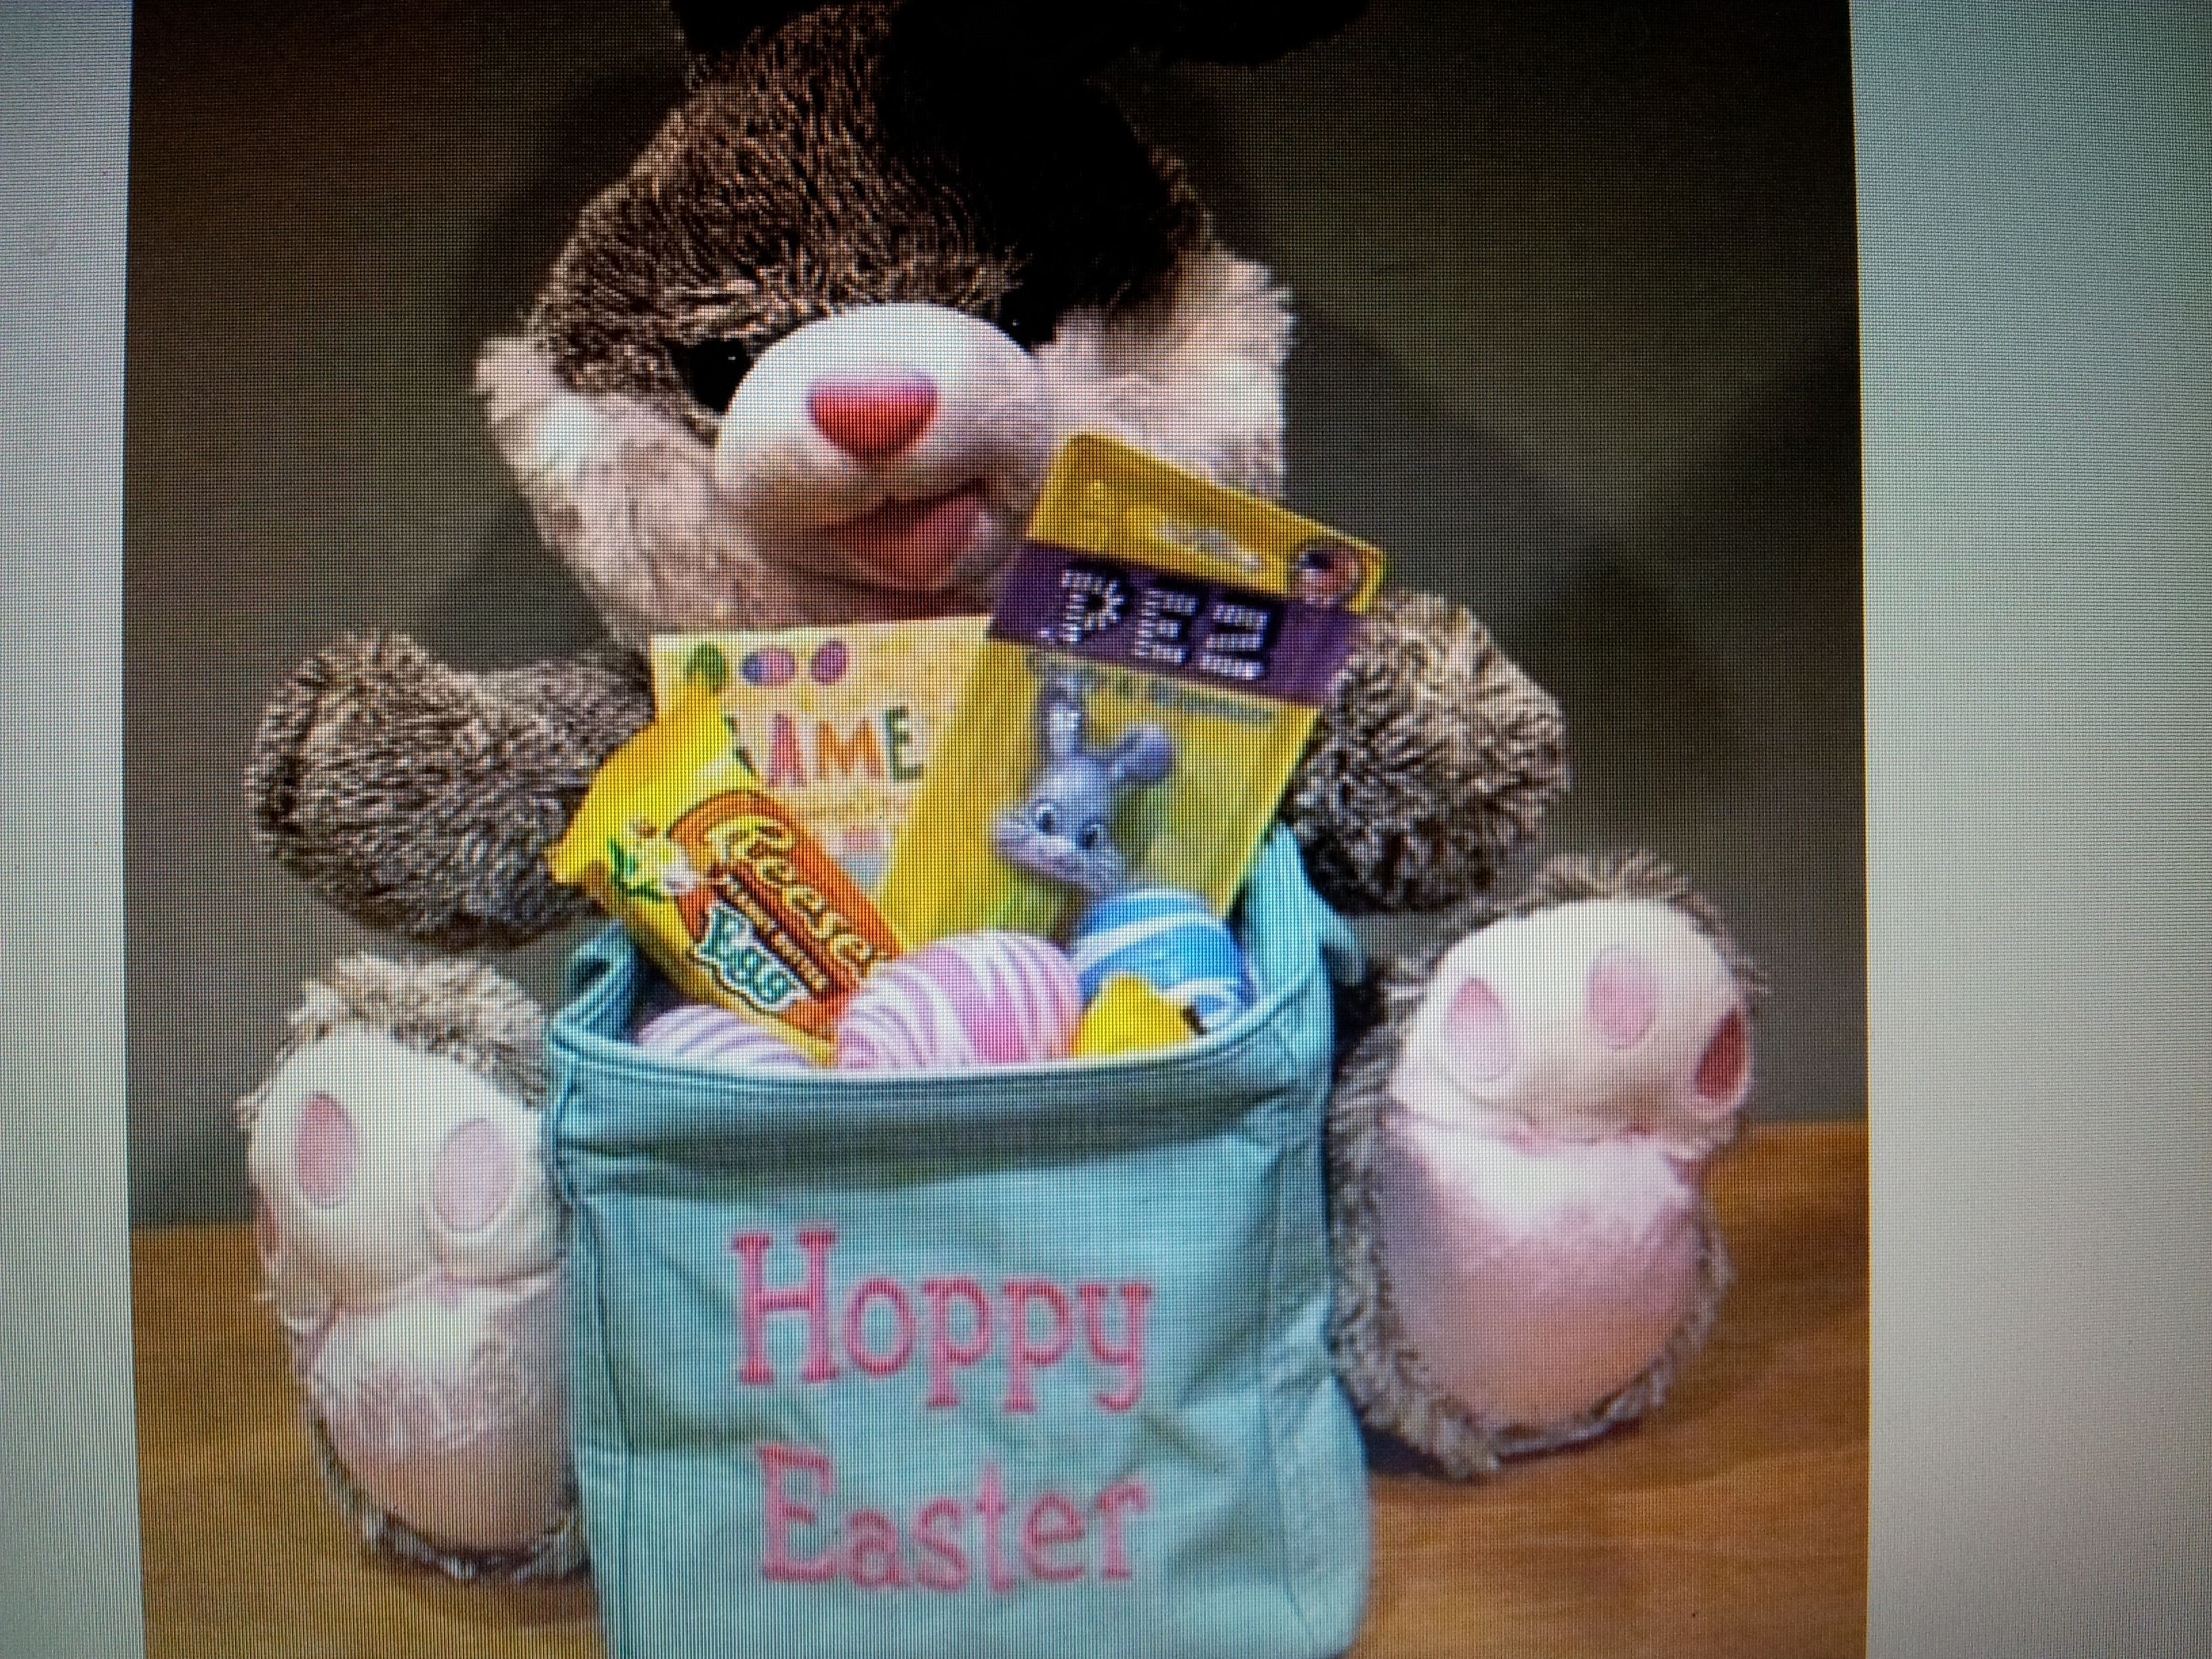 thirty one easter basket check out thirty oen products @ www.mythirtyone.com/483248